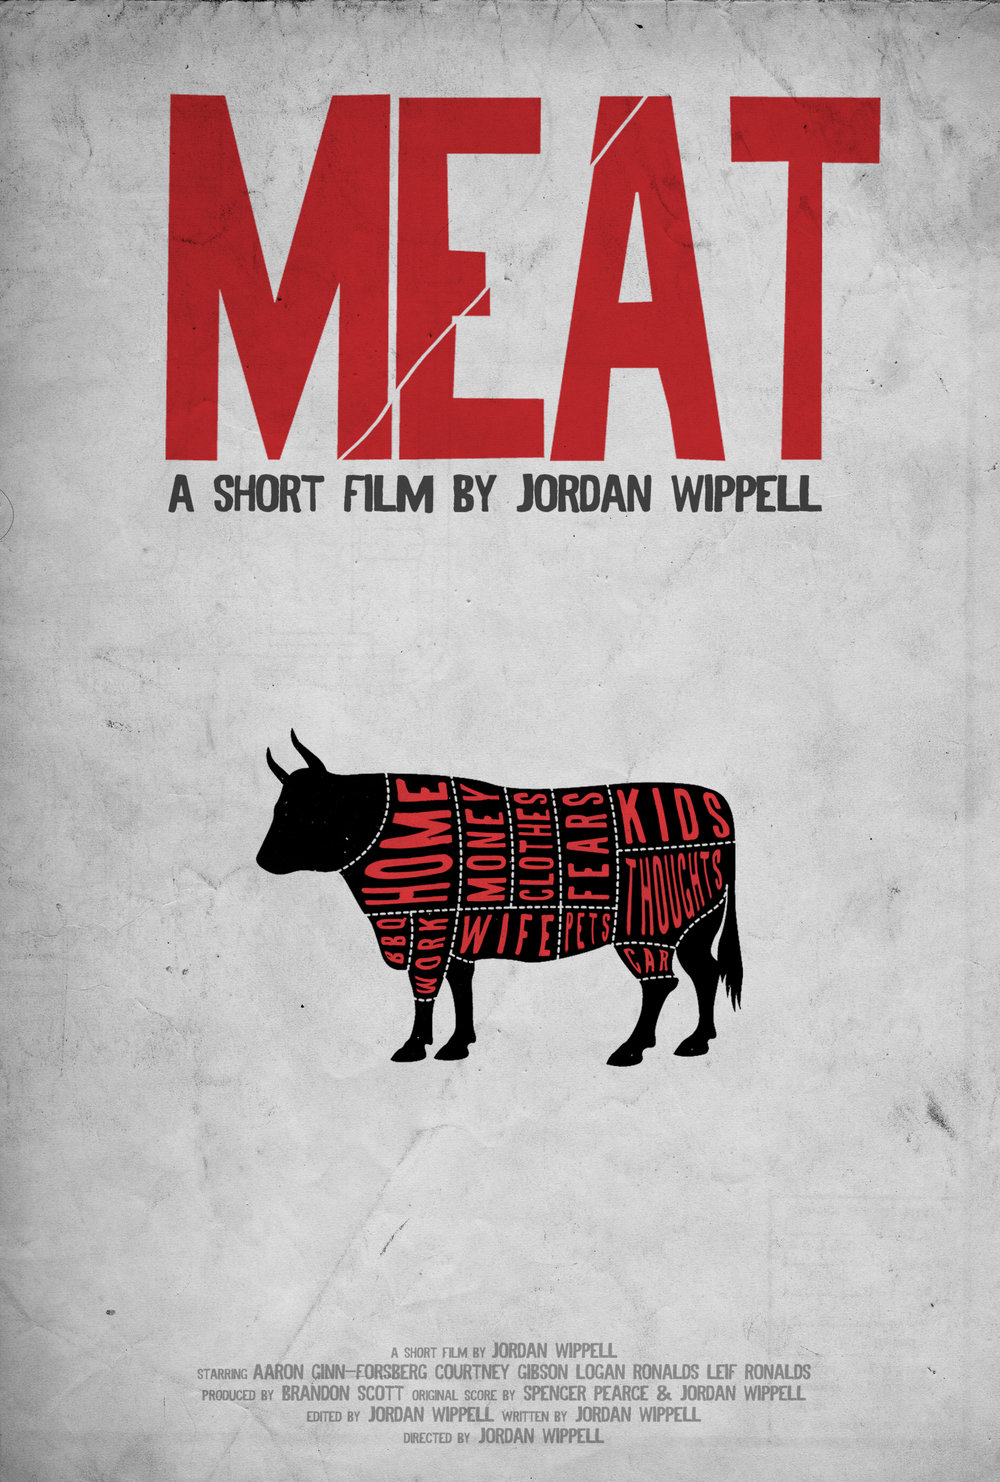 MEAT (2015) - Influenced by the art of Barbara Kruger, noise rock and films like America Psycho and Little Children, MEAT is a winner of the Arizona Film Wars